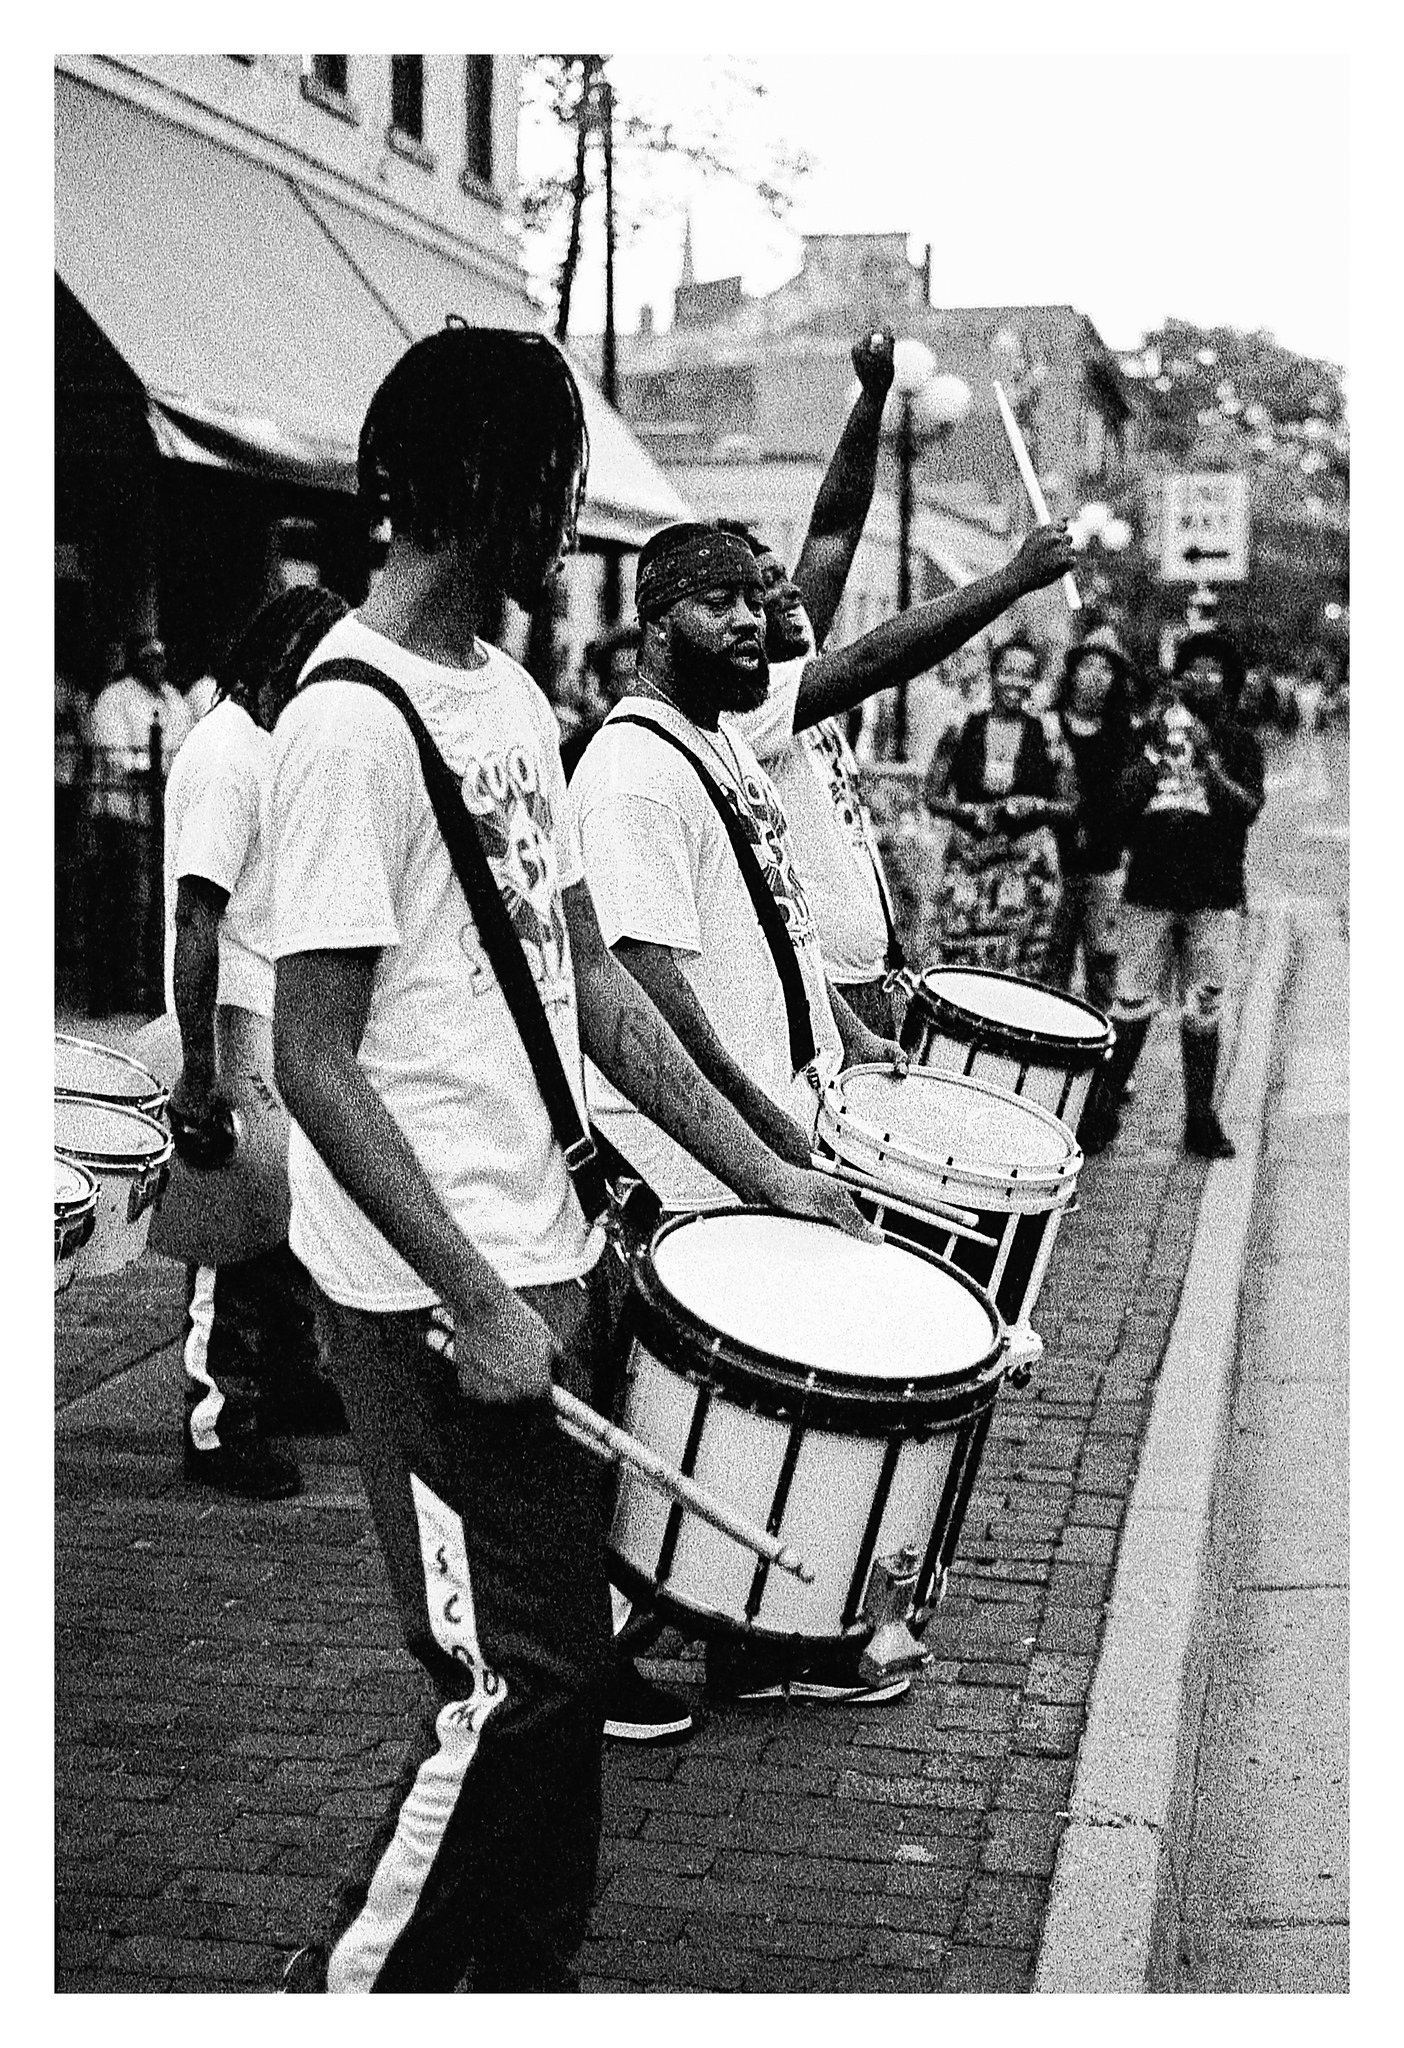 Scoon Squad in the Oregon District - Nikon F5 with 50mm f/1.4 lens at f/2.8 in A-Priority mode on Kodak TMAX P3200 film